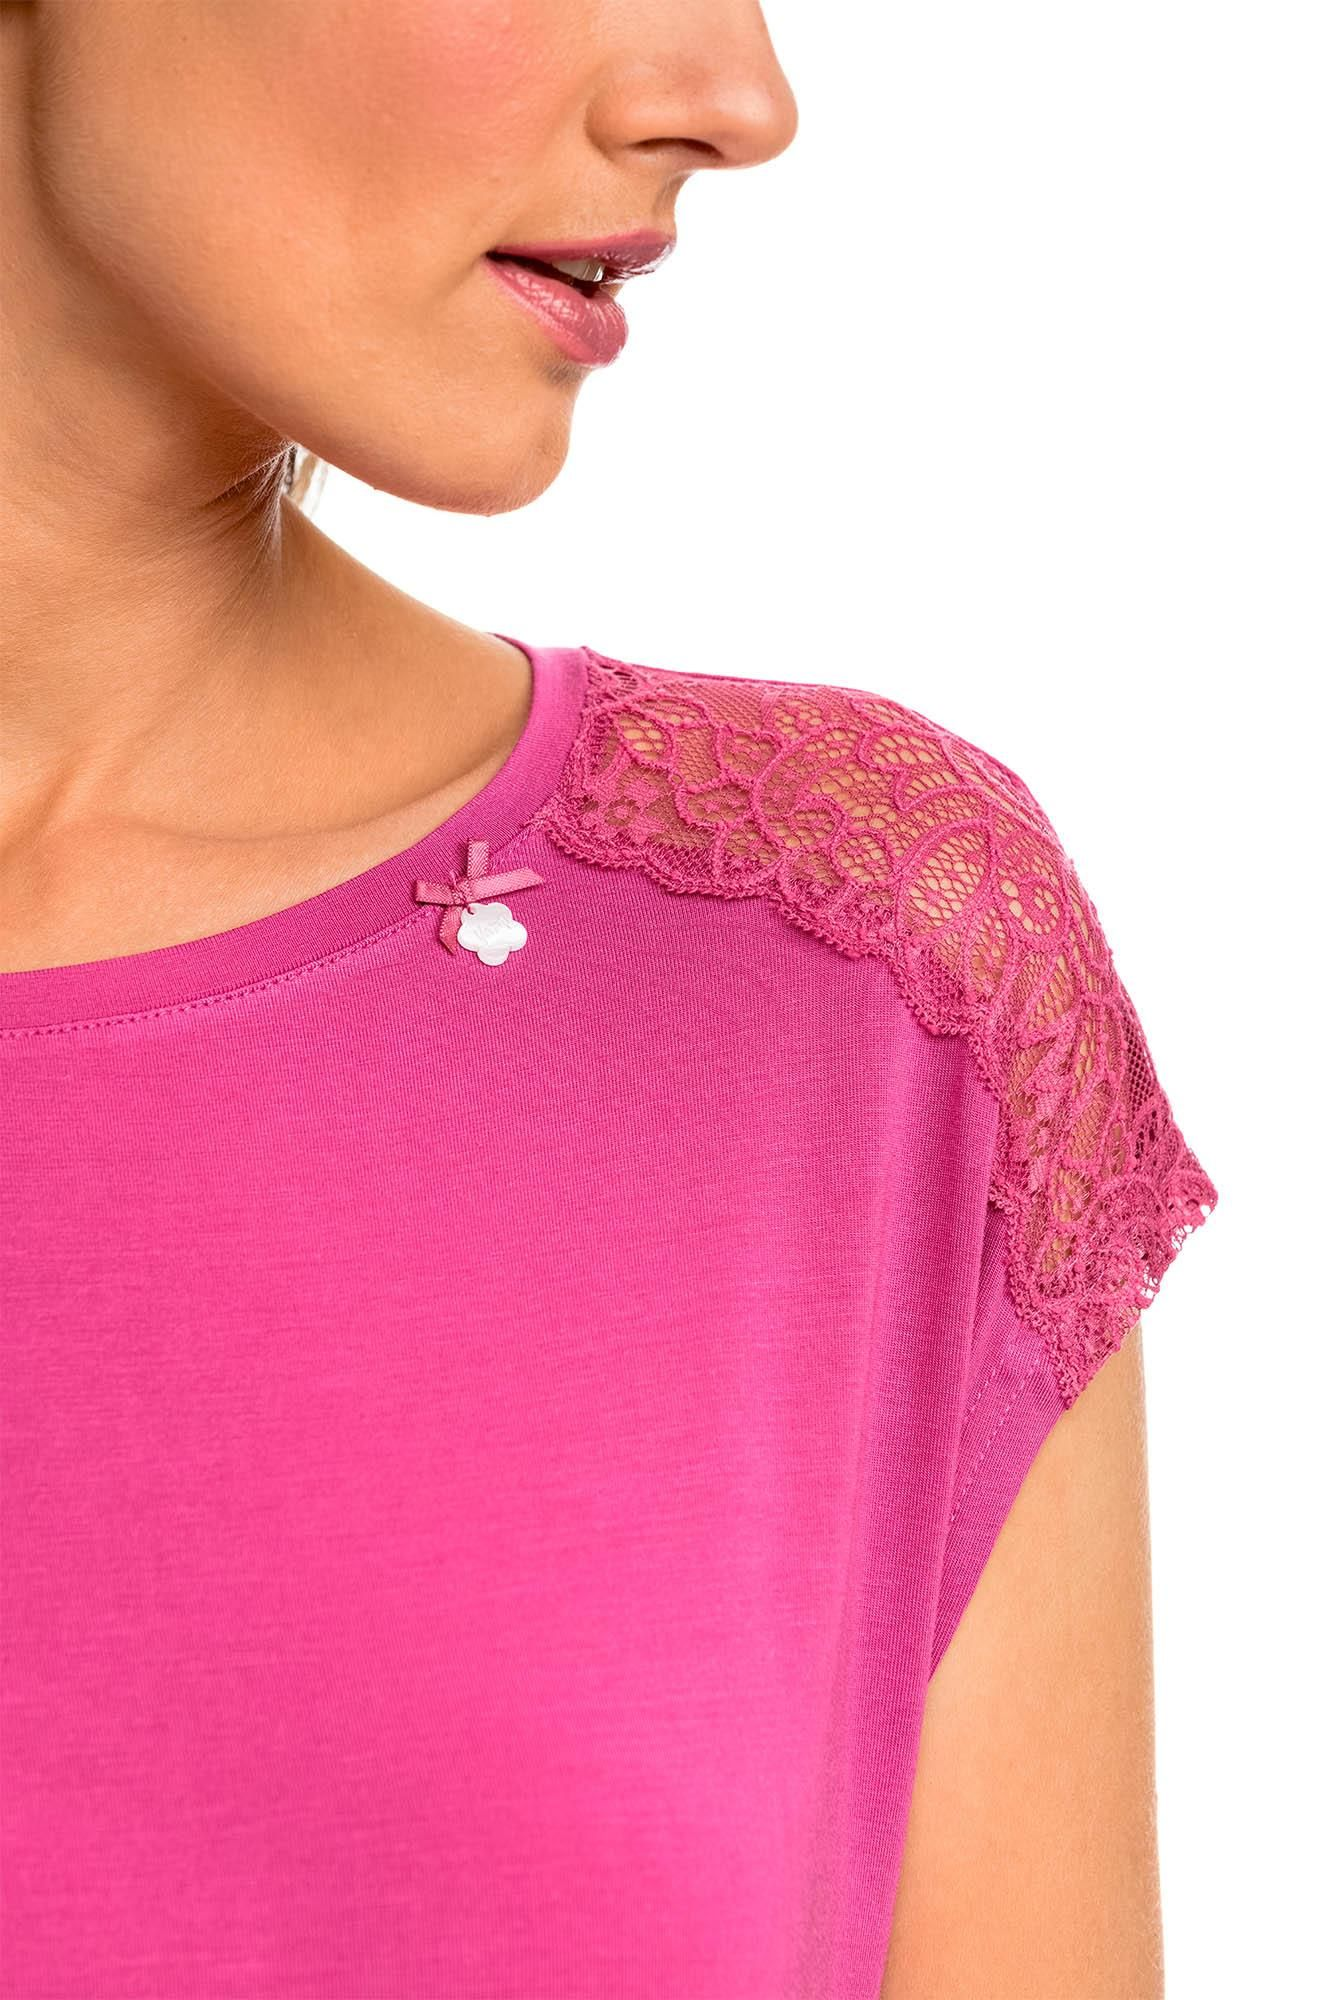 Nightgown with Lace Details